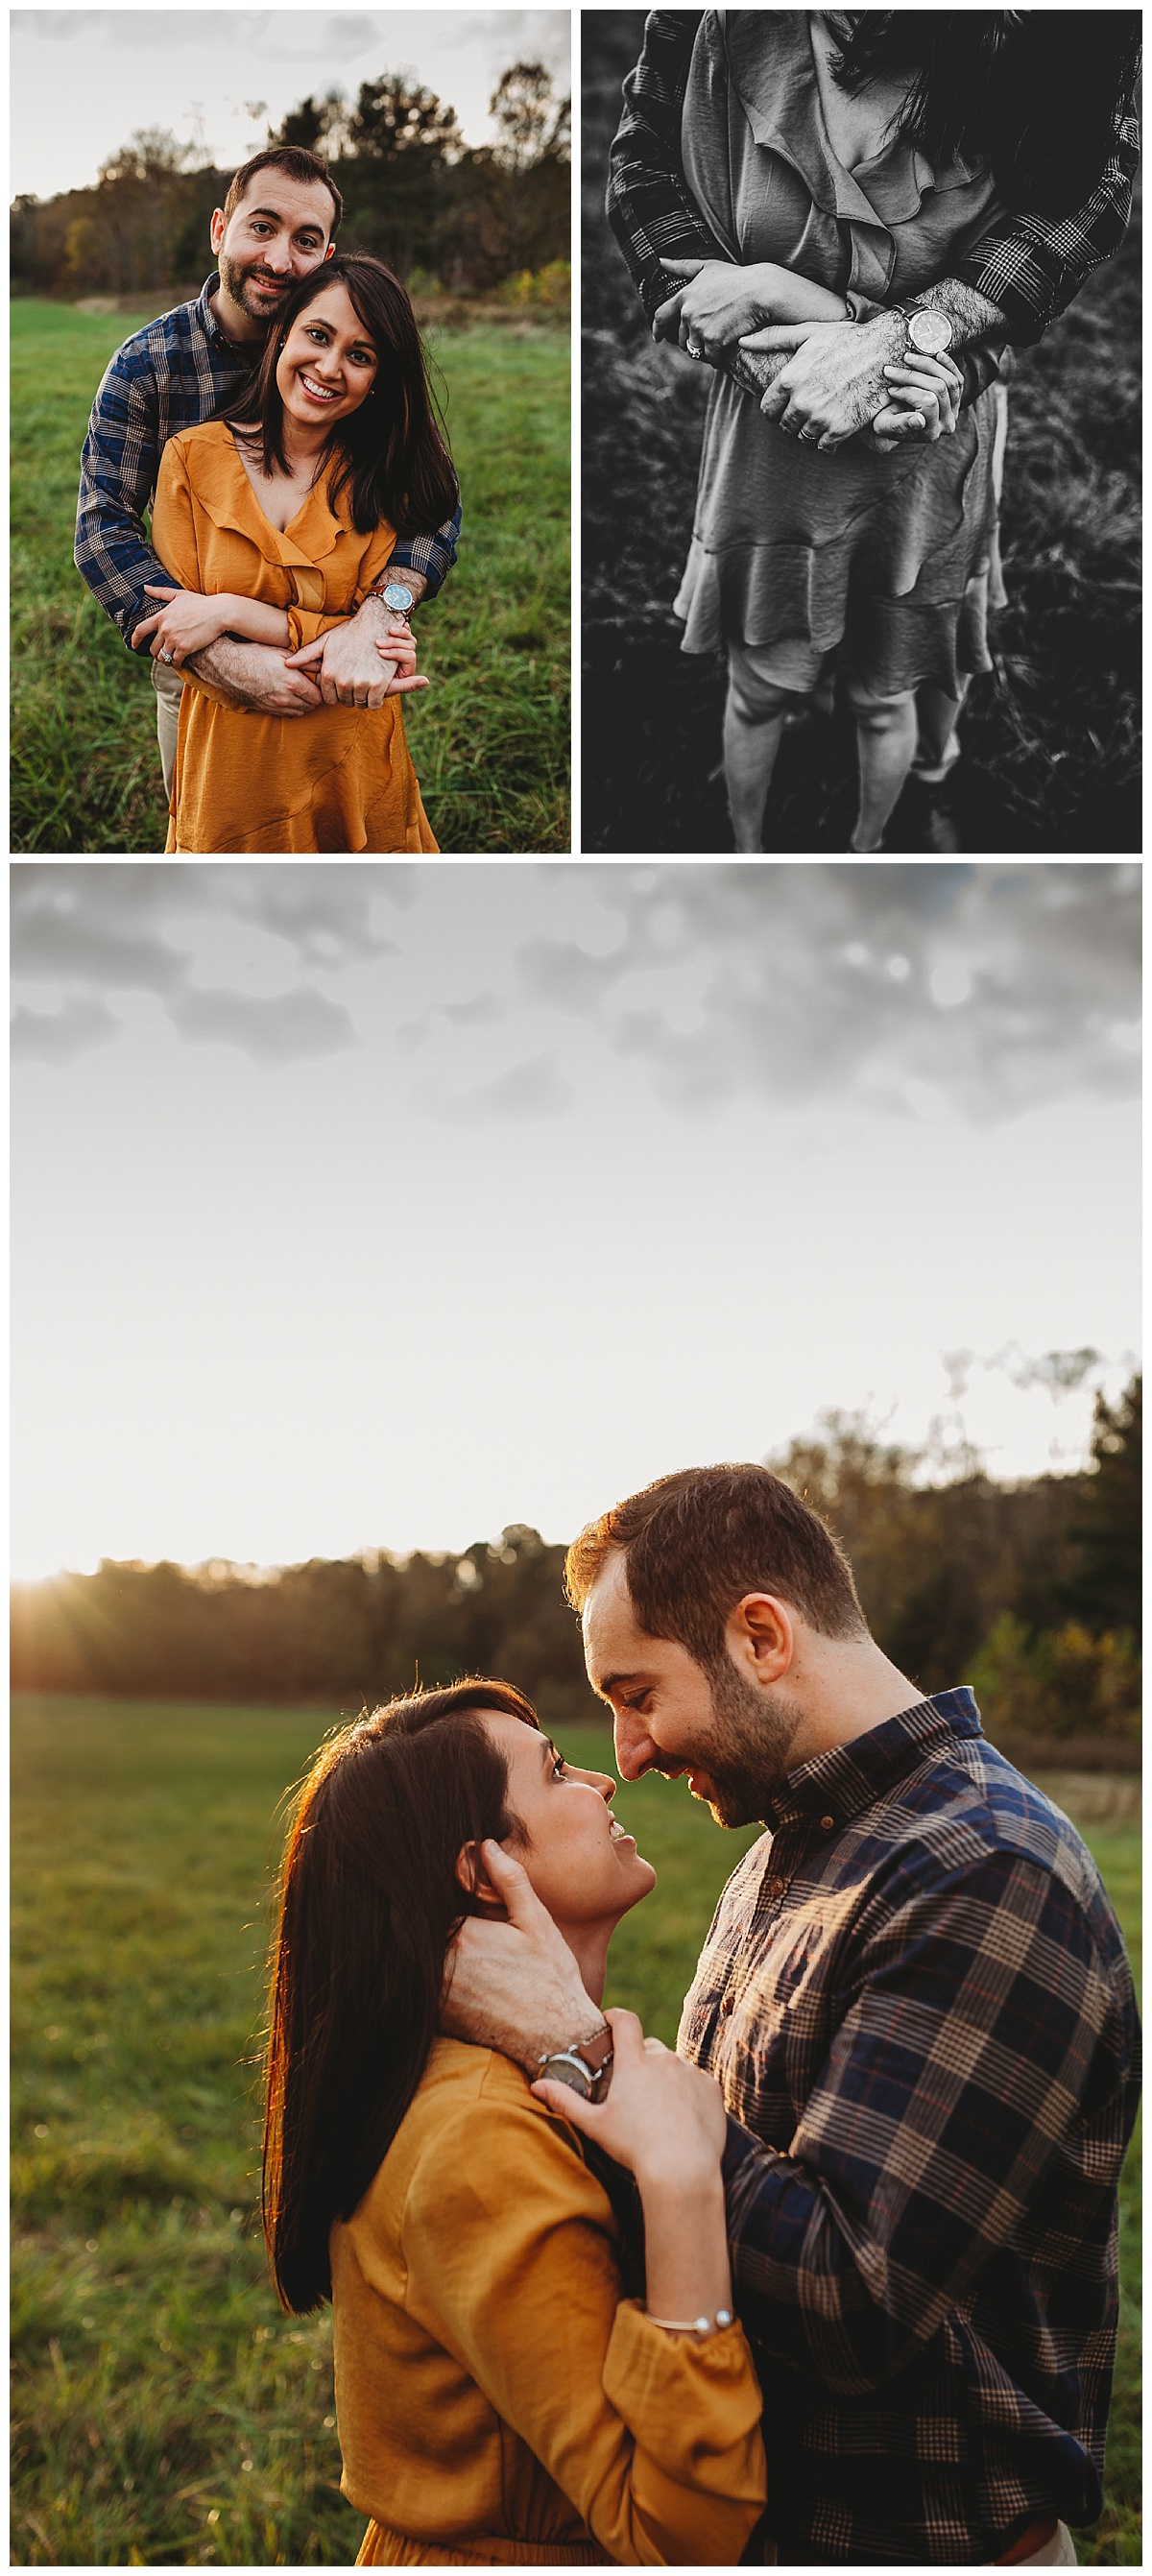 Couple embracing at outdoor family photo session in Cleveland Metroparks.